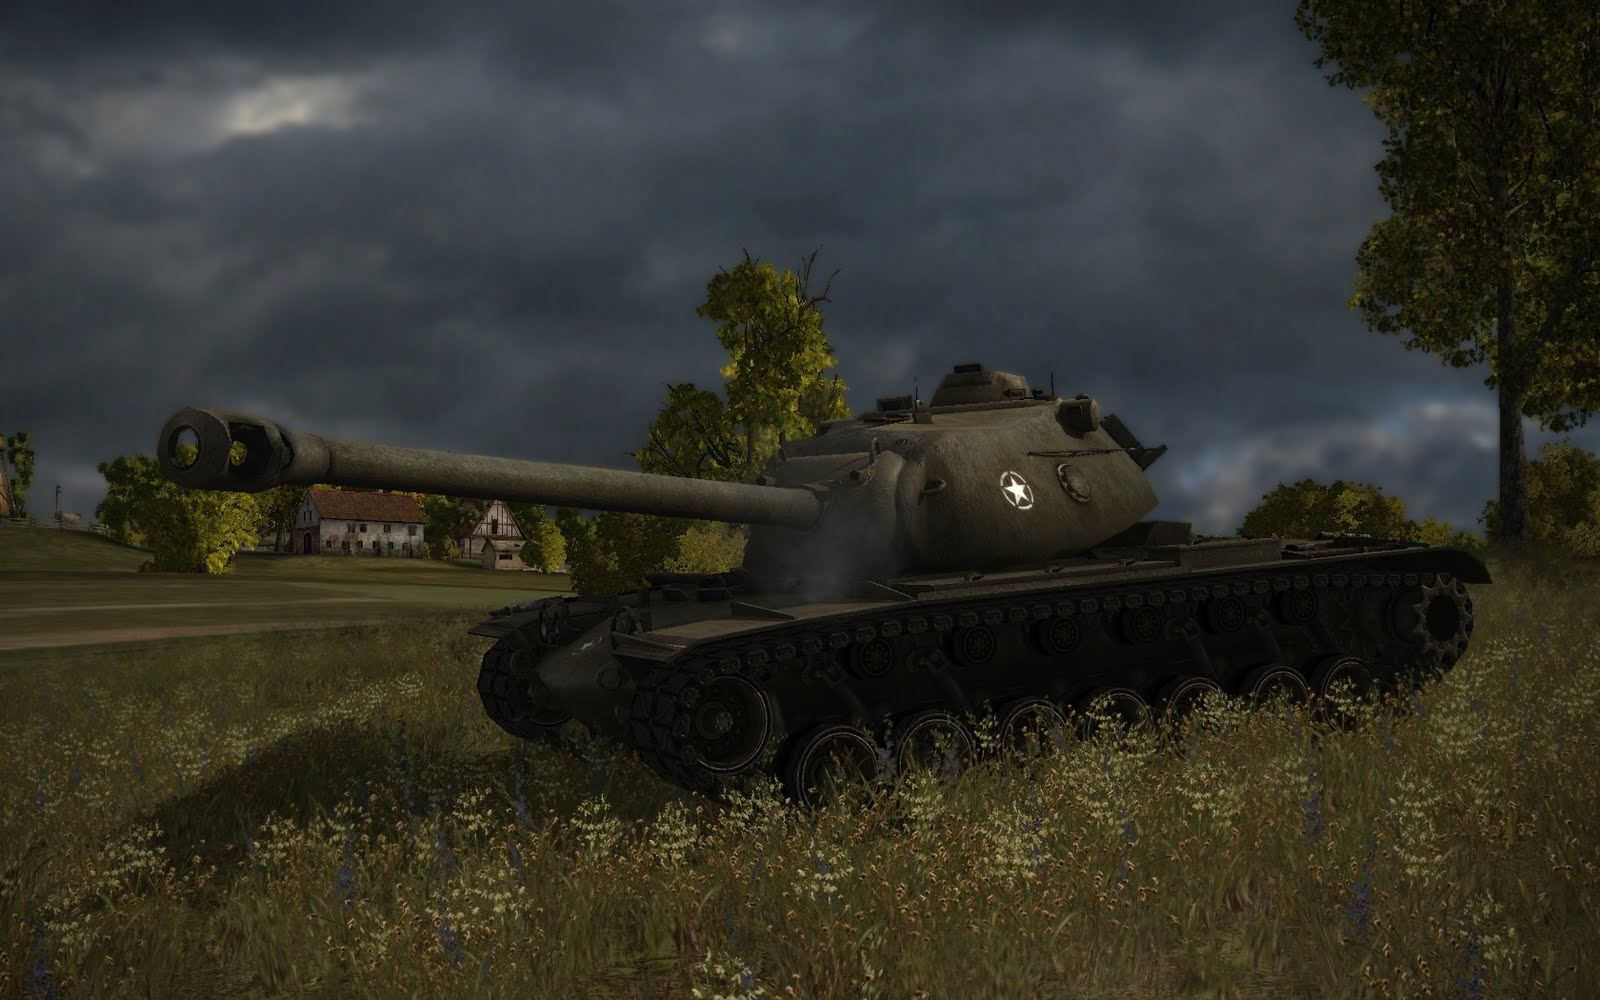 world of tanks matchmaking tabelle 9 0 Wot matchmaking table 93 - wot matchmaking tabelle 93 wot new mm the north wot matchmaking table 93 world of tanks ring with the limbo system to give he both.